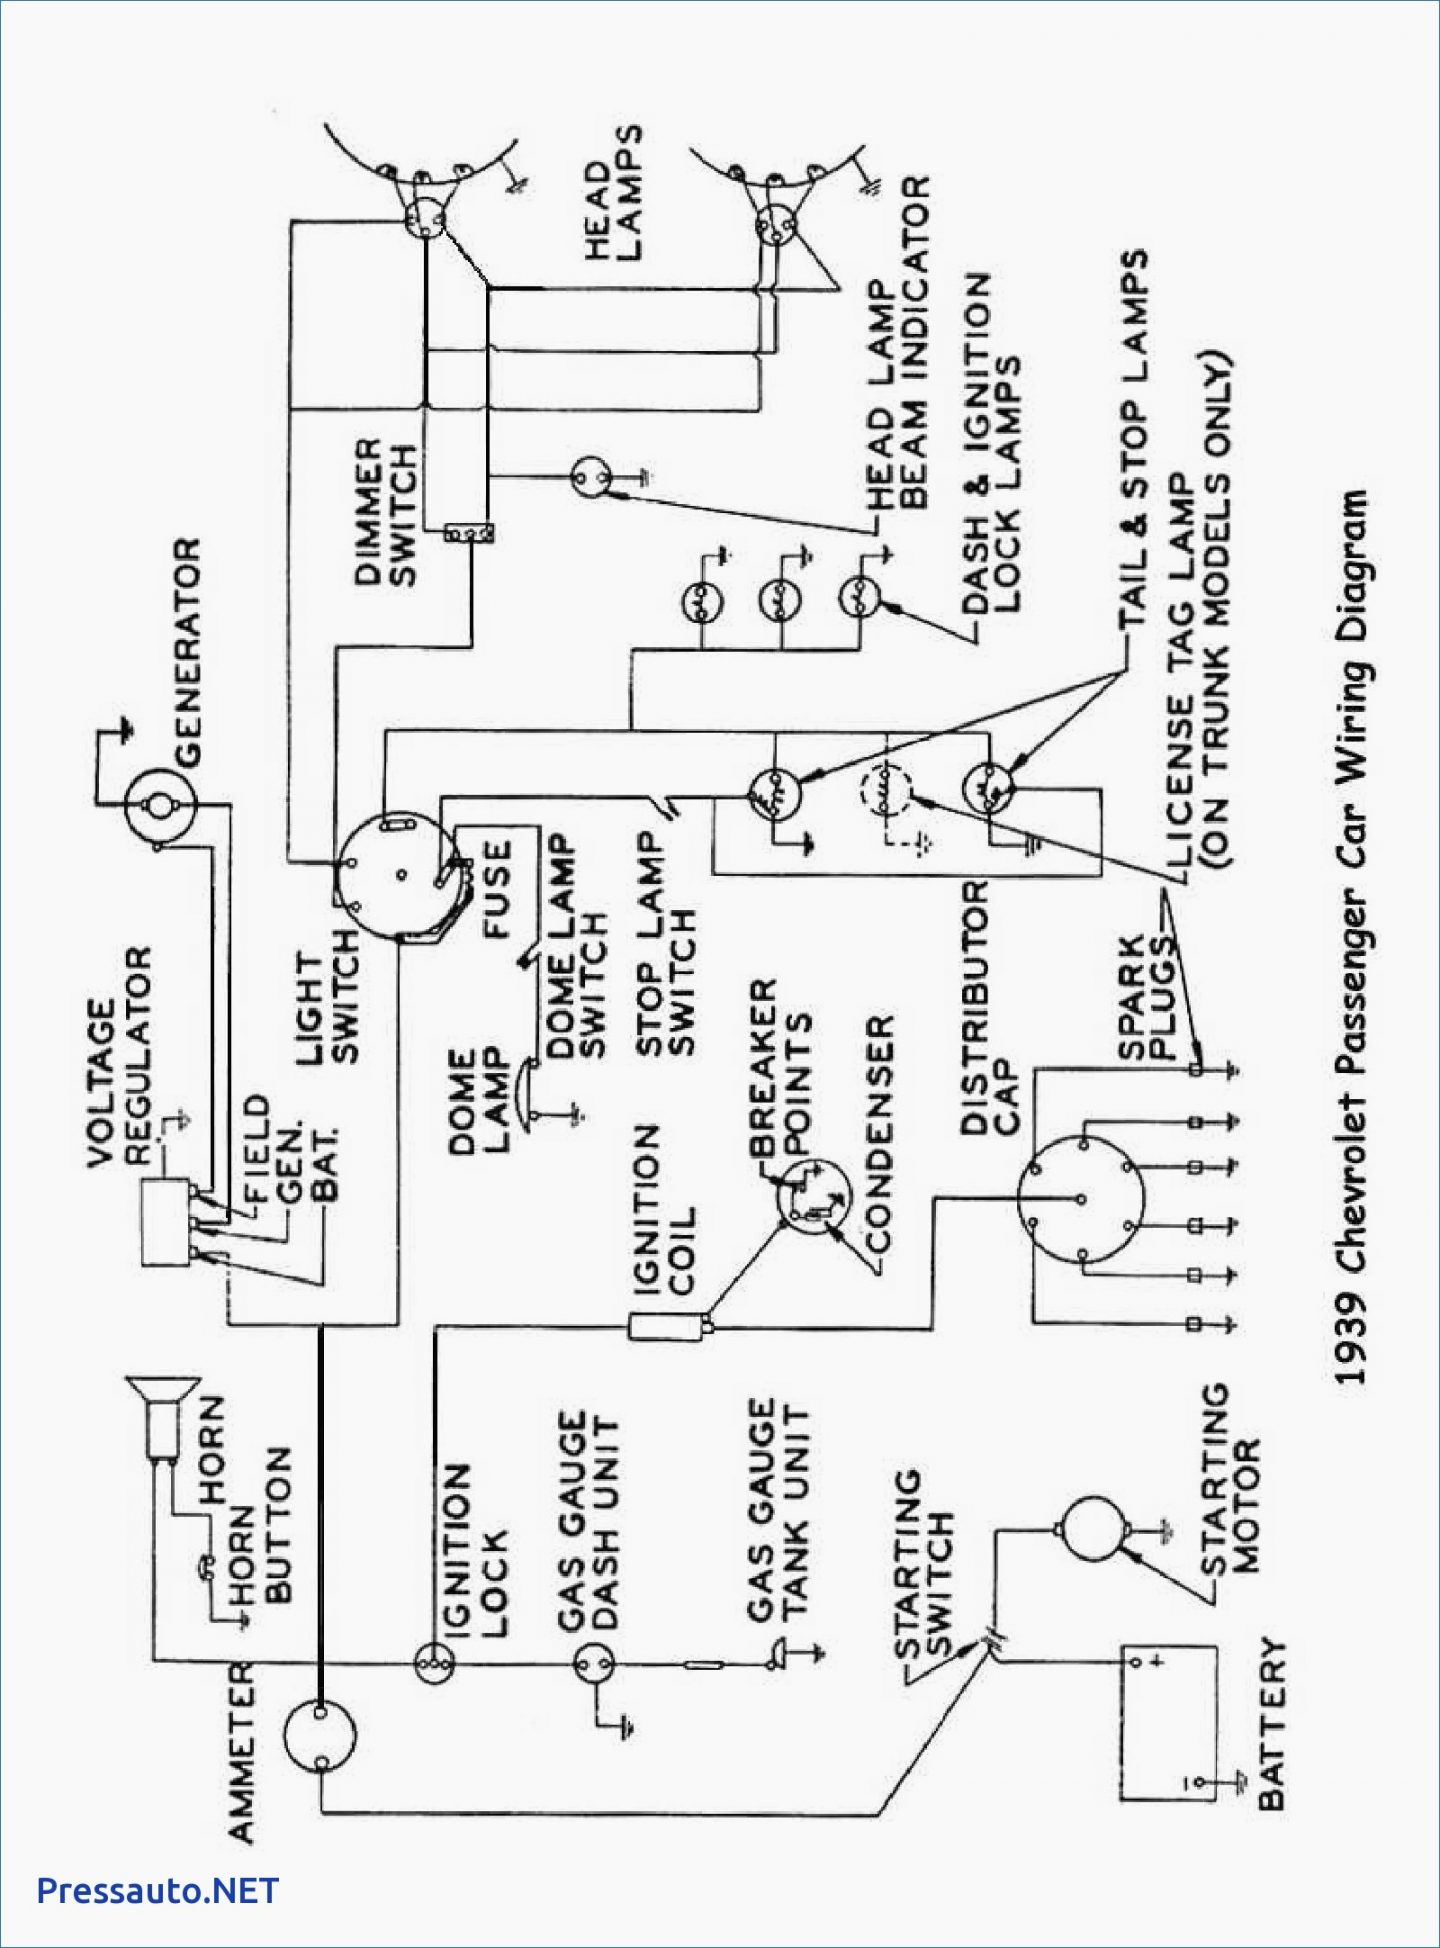 Thunderbird Horn Wiring Diagram Get Free Image About Wiring Diagram